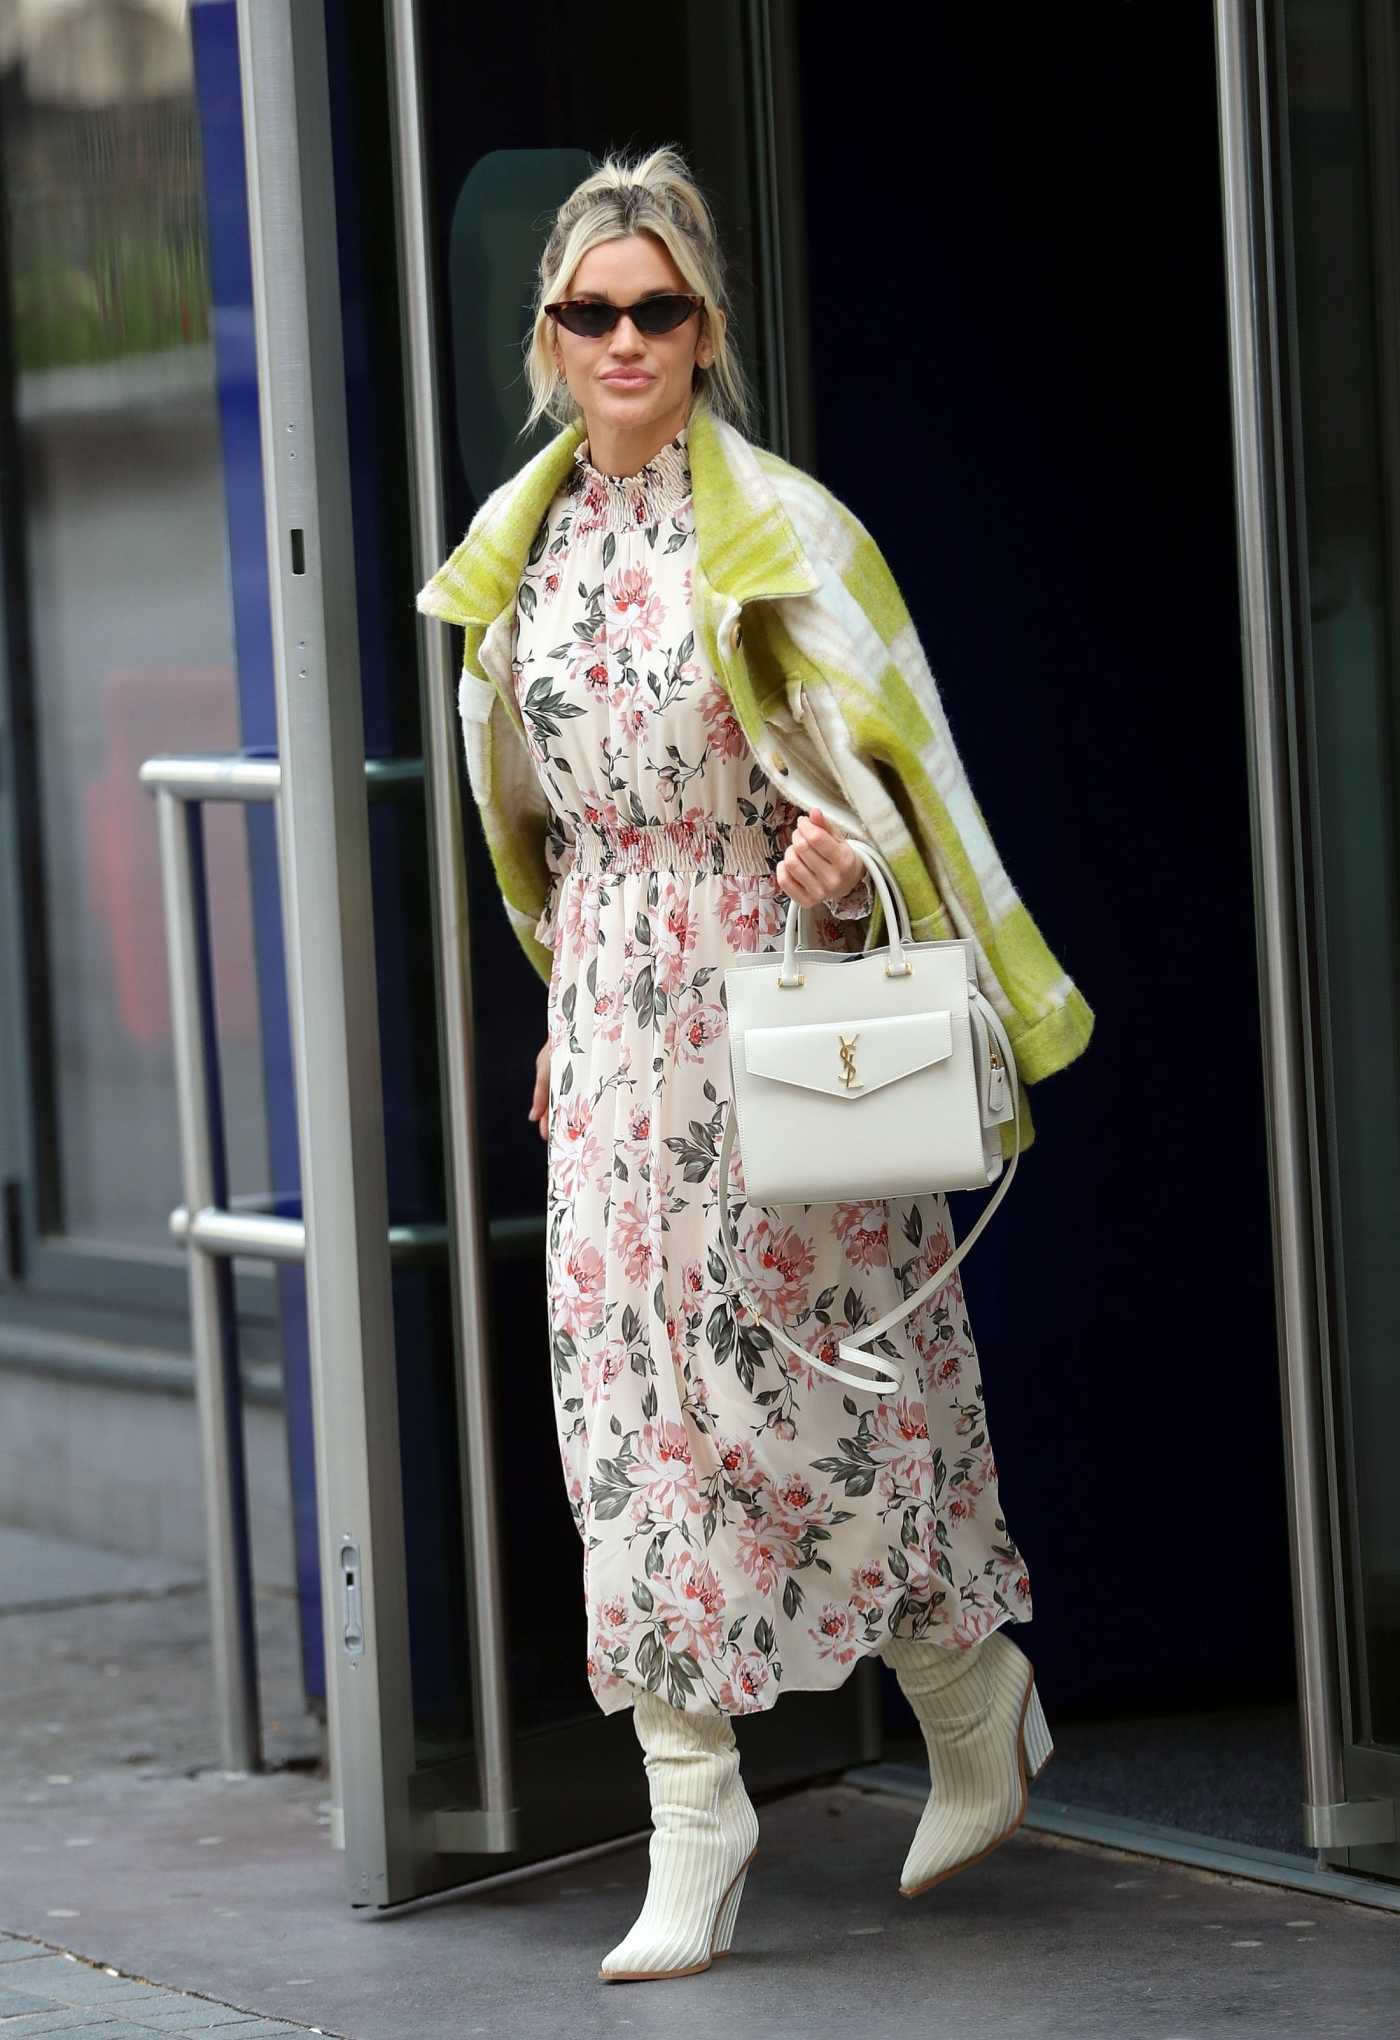 Ashley Roberts in a White Floral Dress Leaves the Global Studios in London 04/08/2020